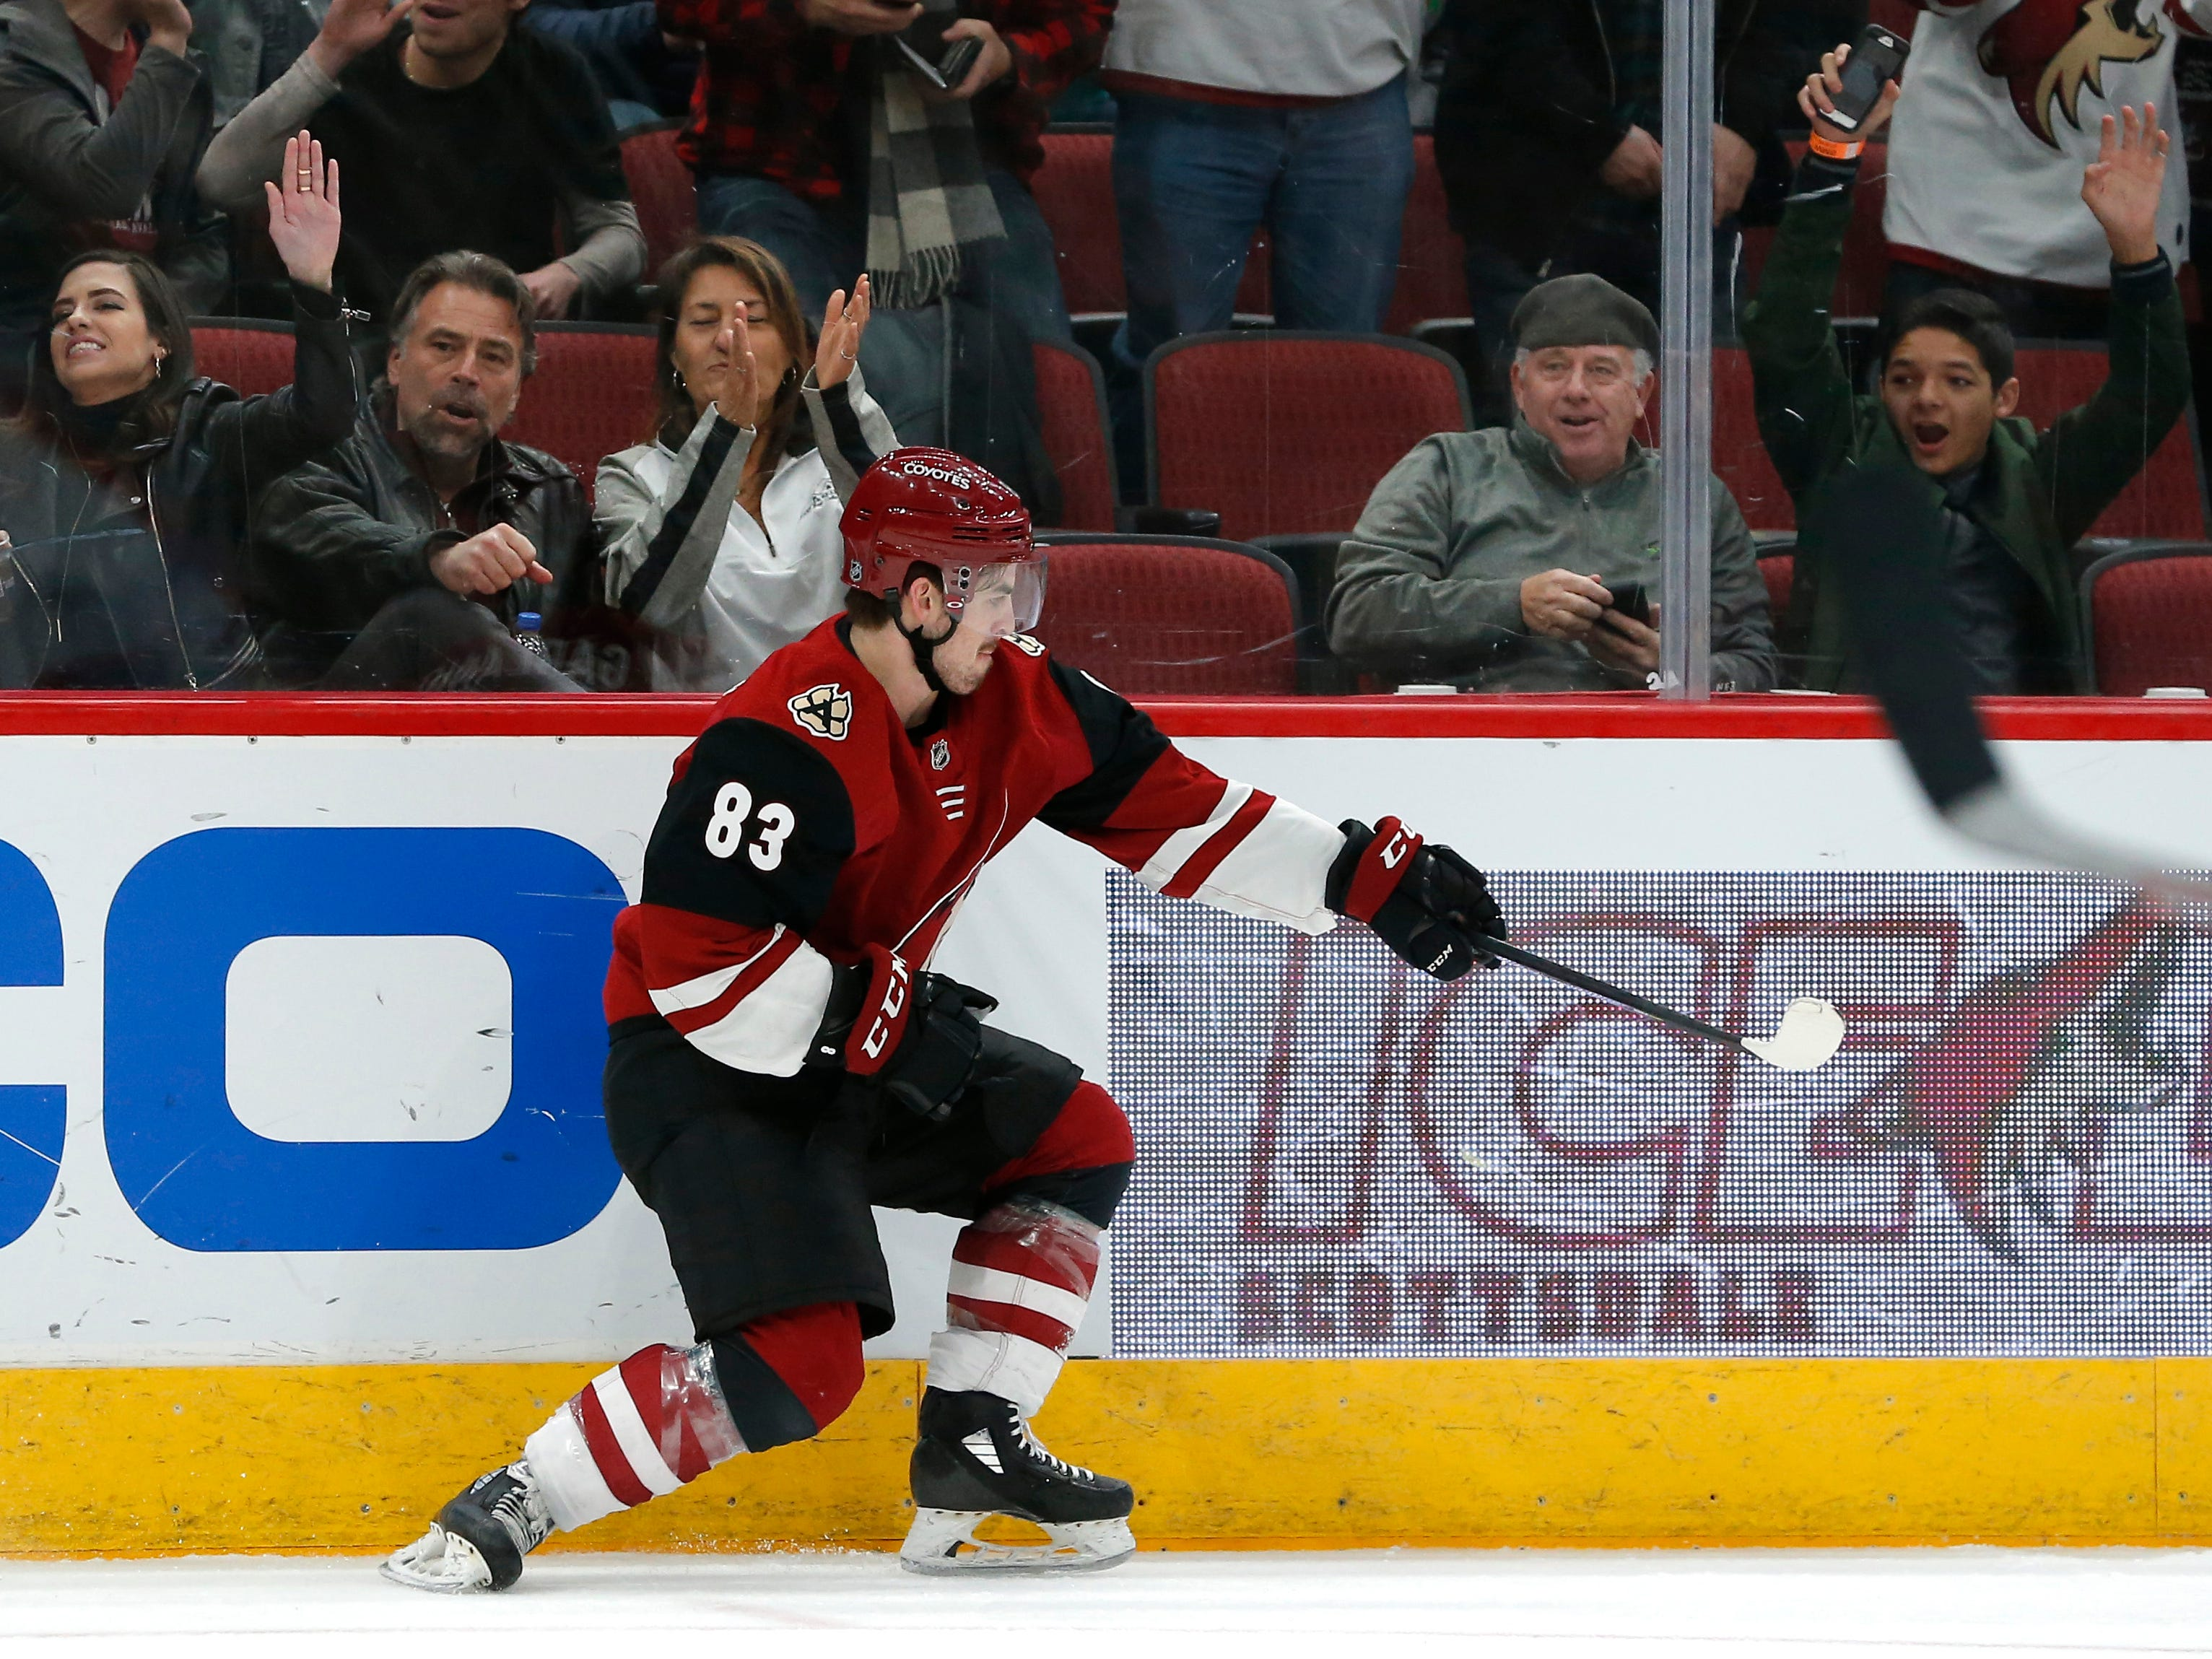 Arizona Coyotes right wing Conor Garland (83) celebrates after scoring a goal in the second period during an NHL hockey game against the Columbus Blue Jackets, Thursday, Feb. 7, 2019, in Glendale, Ariz.